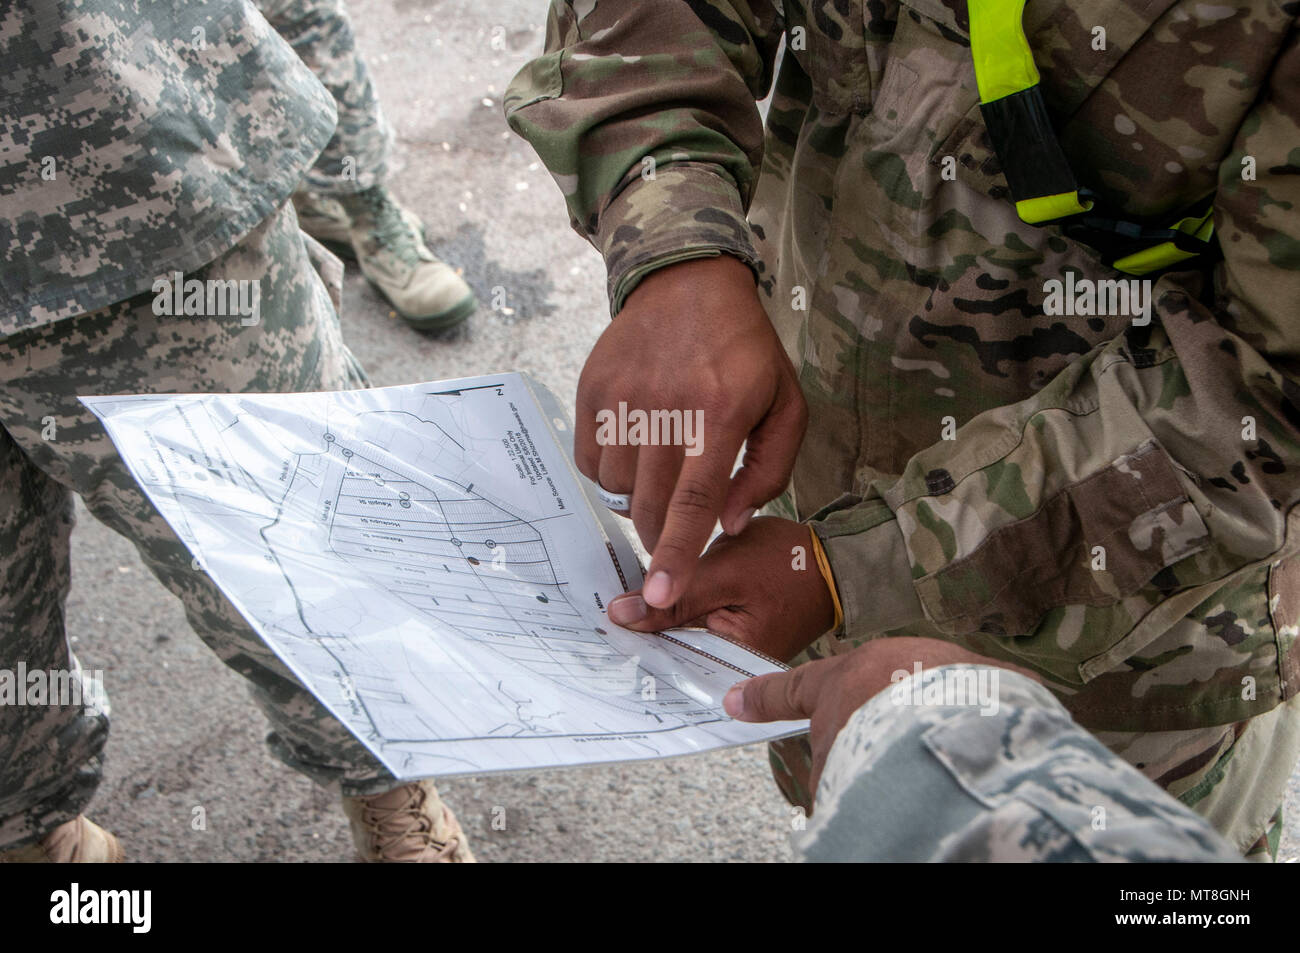 Members of the Hawaii National Guard review a map in response to a volcano outbreak May 12, 2018, at Leilani Estates, Pahoa, Hawaii. More than 100 soldiers and airmen have been activated to form Task Force Hawaii, which is assisting government agencies by providing presence patrols in affected and traffic guidance in affected neighborhoods. (U.S. Air National Guard photo by Senior Airman John Linzmeier) - Stock Image